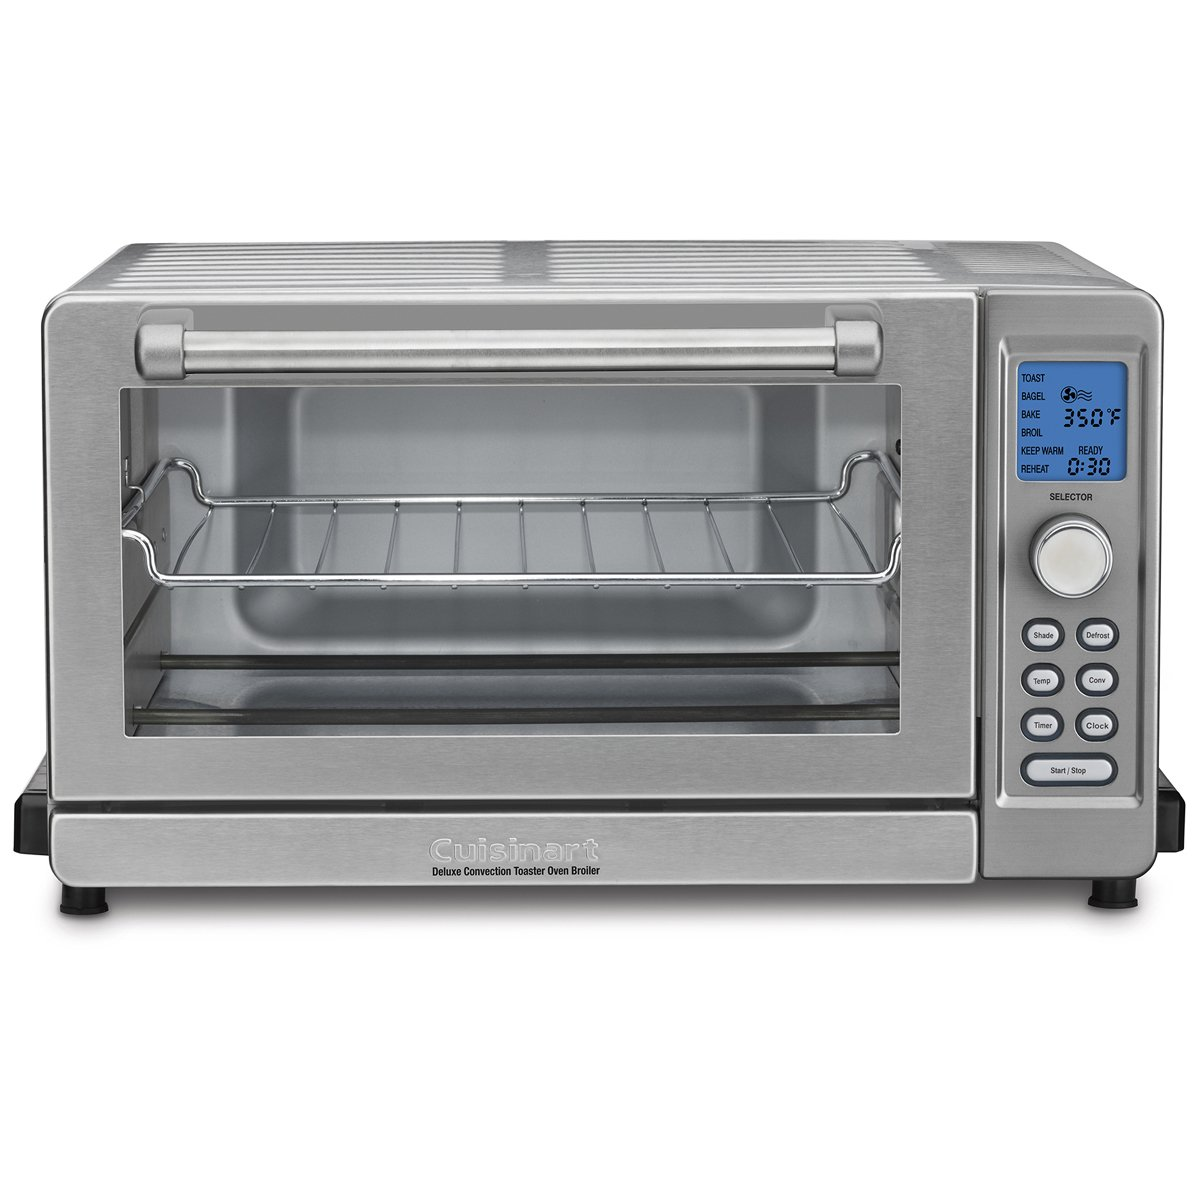 Cuisinart TOB-135 Deluxe Convection Toaster Oven Broiler, Brushed Stainless, 9.3'' x 18.3'' x 15.3'', Silver by Cuisinart